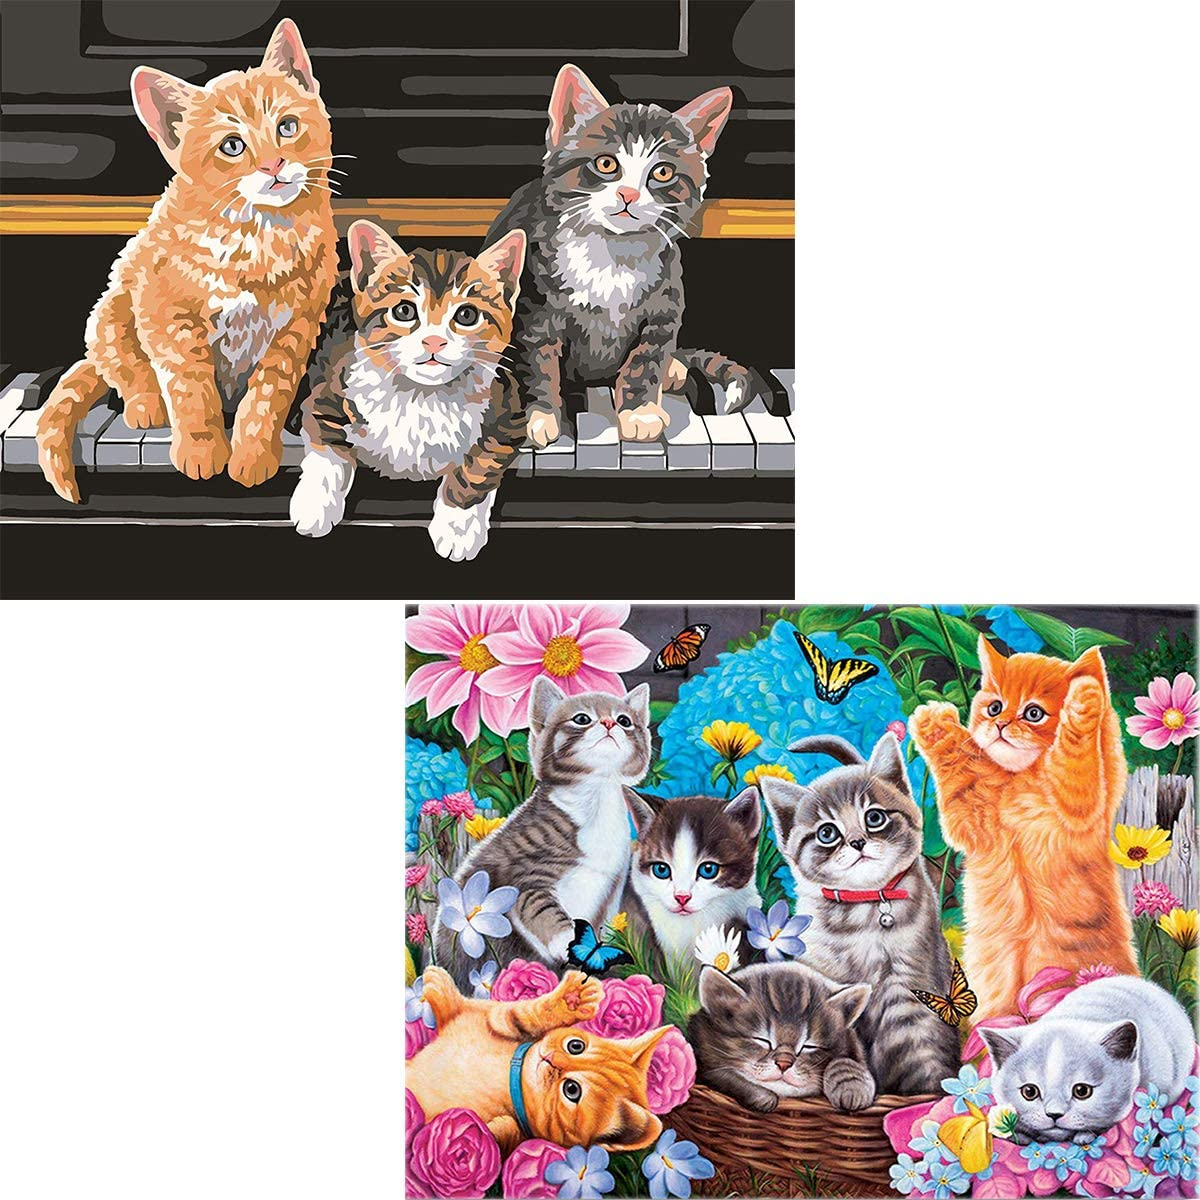 5D Diamond Painting Kits By Number Full Drill 16 inch Animal Cat Dog DIY Rhinestone Embroidery Cross Stitch Pictures Arts Craft Home Wall Decor Gift 12